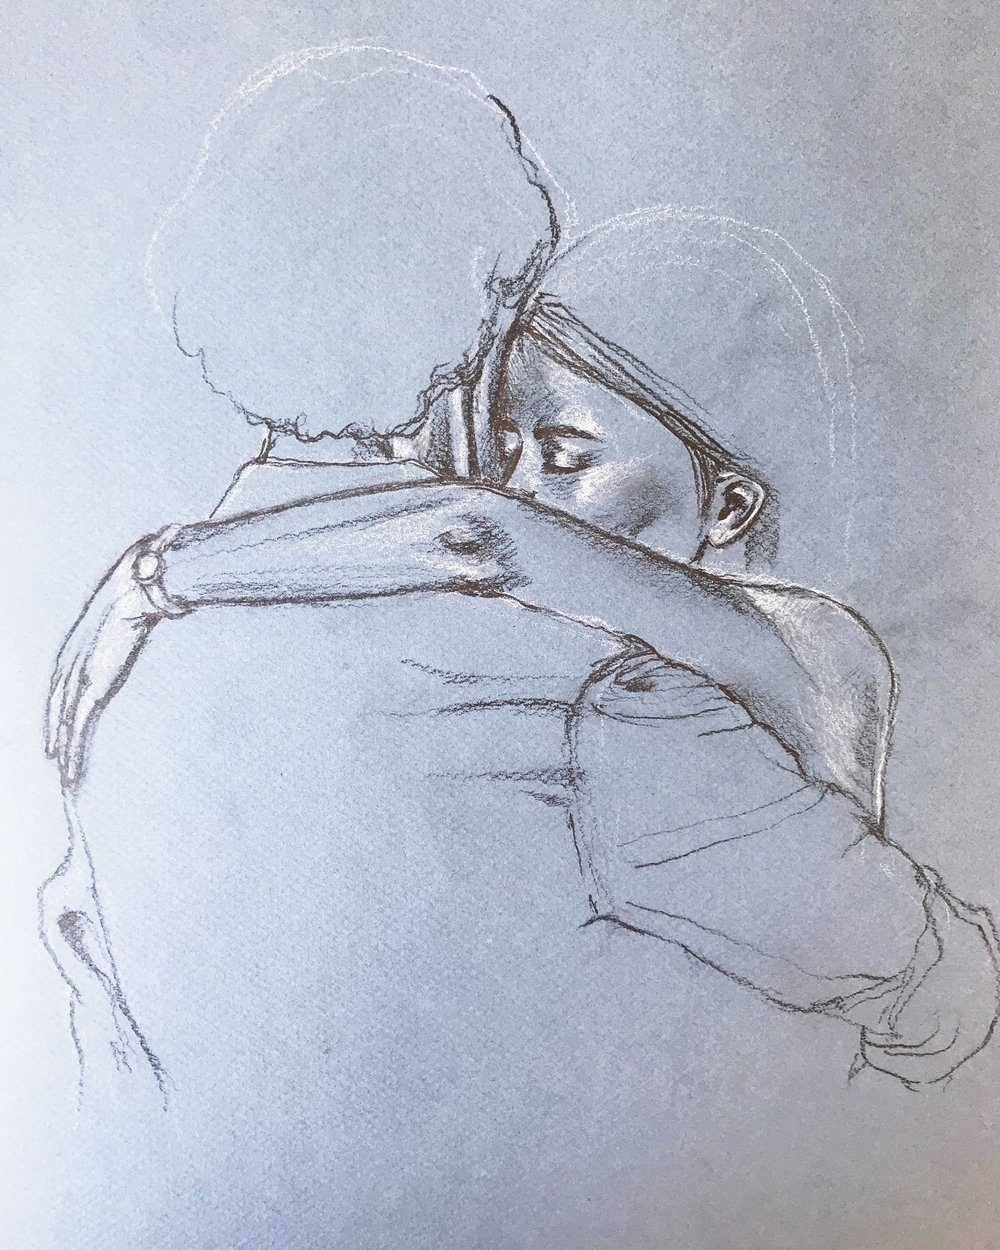 tango portrait - immortalize your embrace...NOTES — Please submit reference photos you'd like me to use. Turnaround time is 3-4 weeks, rush orders available upon request.